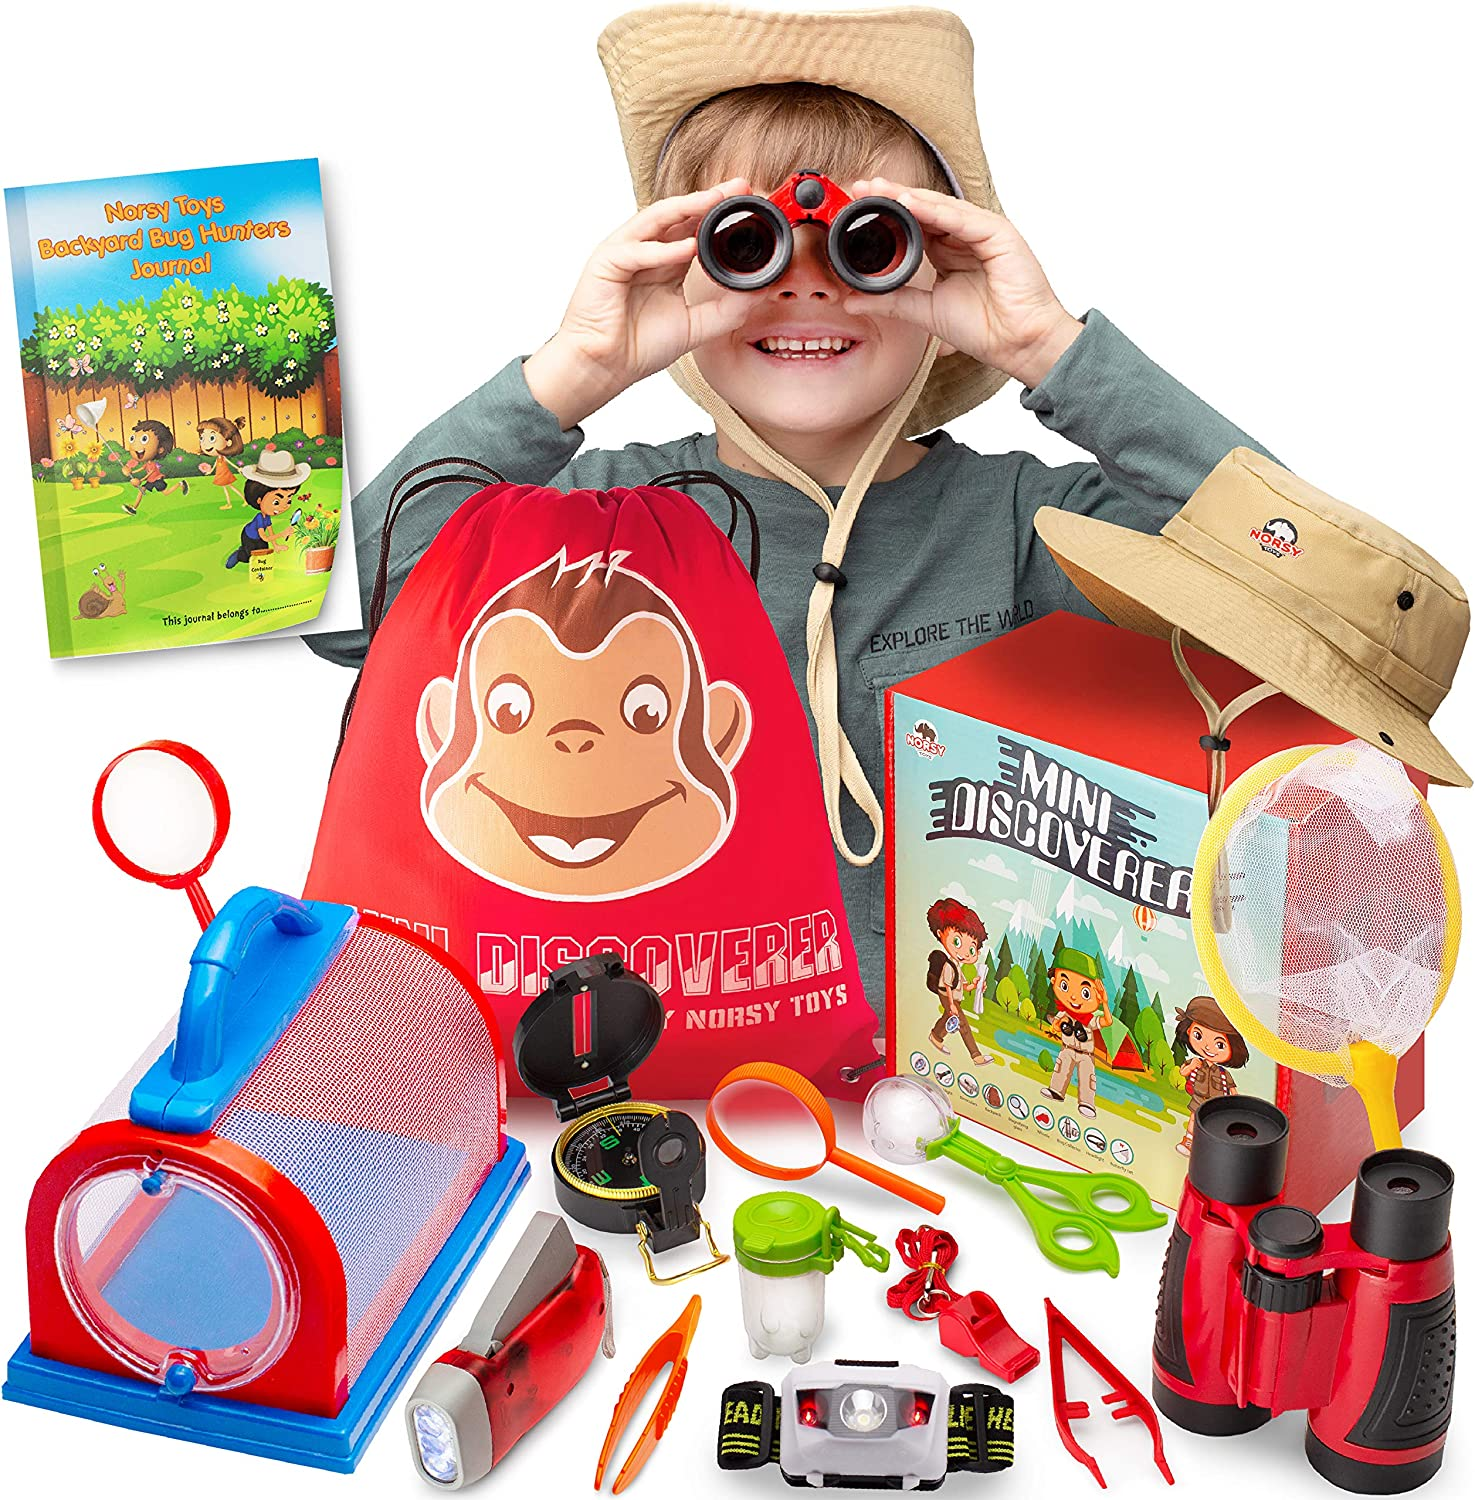 Kids Explorer Kit - Bug Catcher Kit for Kids & Binoculars for Kids - Great Gift for Boys & Girls - Best for 3, 4, 5, 6, 7, 8, 9 & 10 Year Old | Magnifying Glass, Flashlight, Compass, Safari Hat